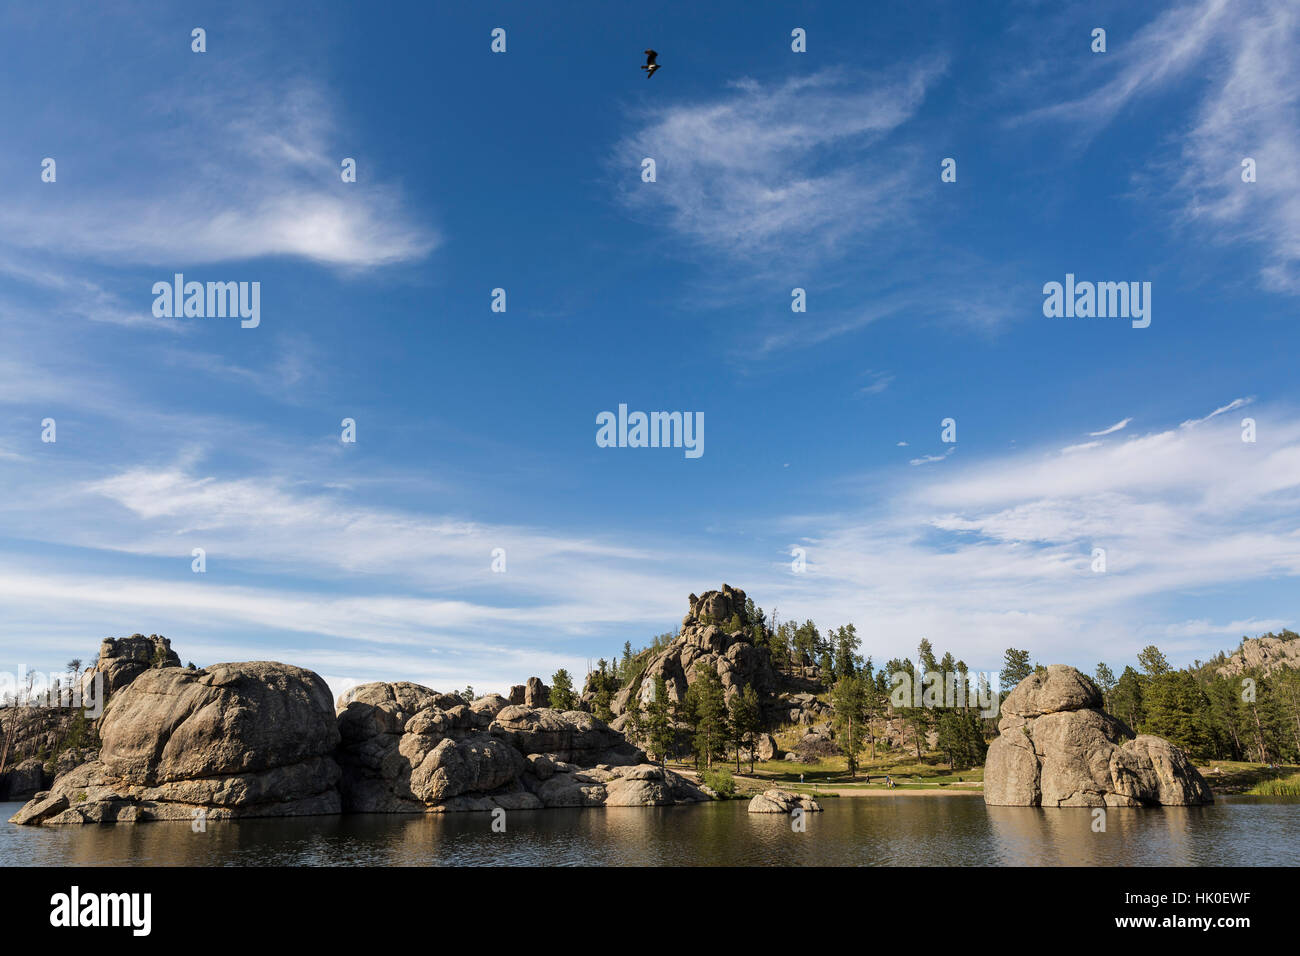 Sylvan Lake. Sept, 2016. Custer State Park, South Dakota, USA - Stock Image